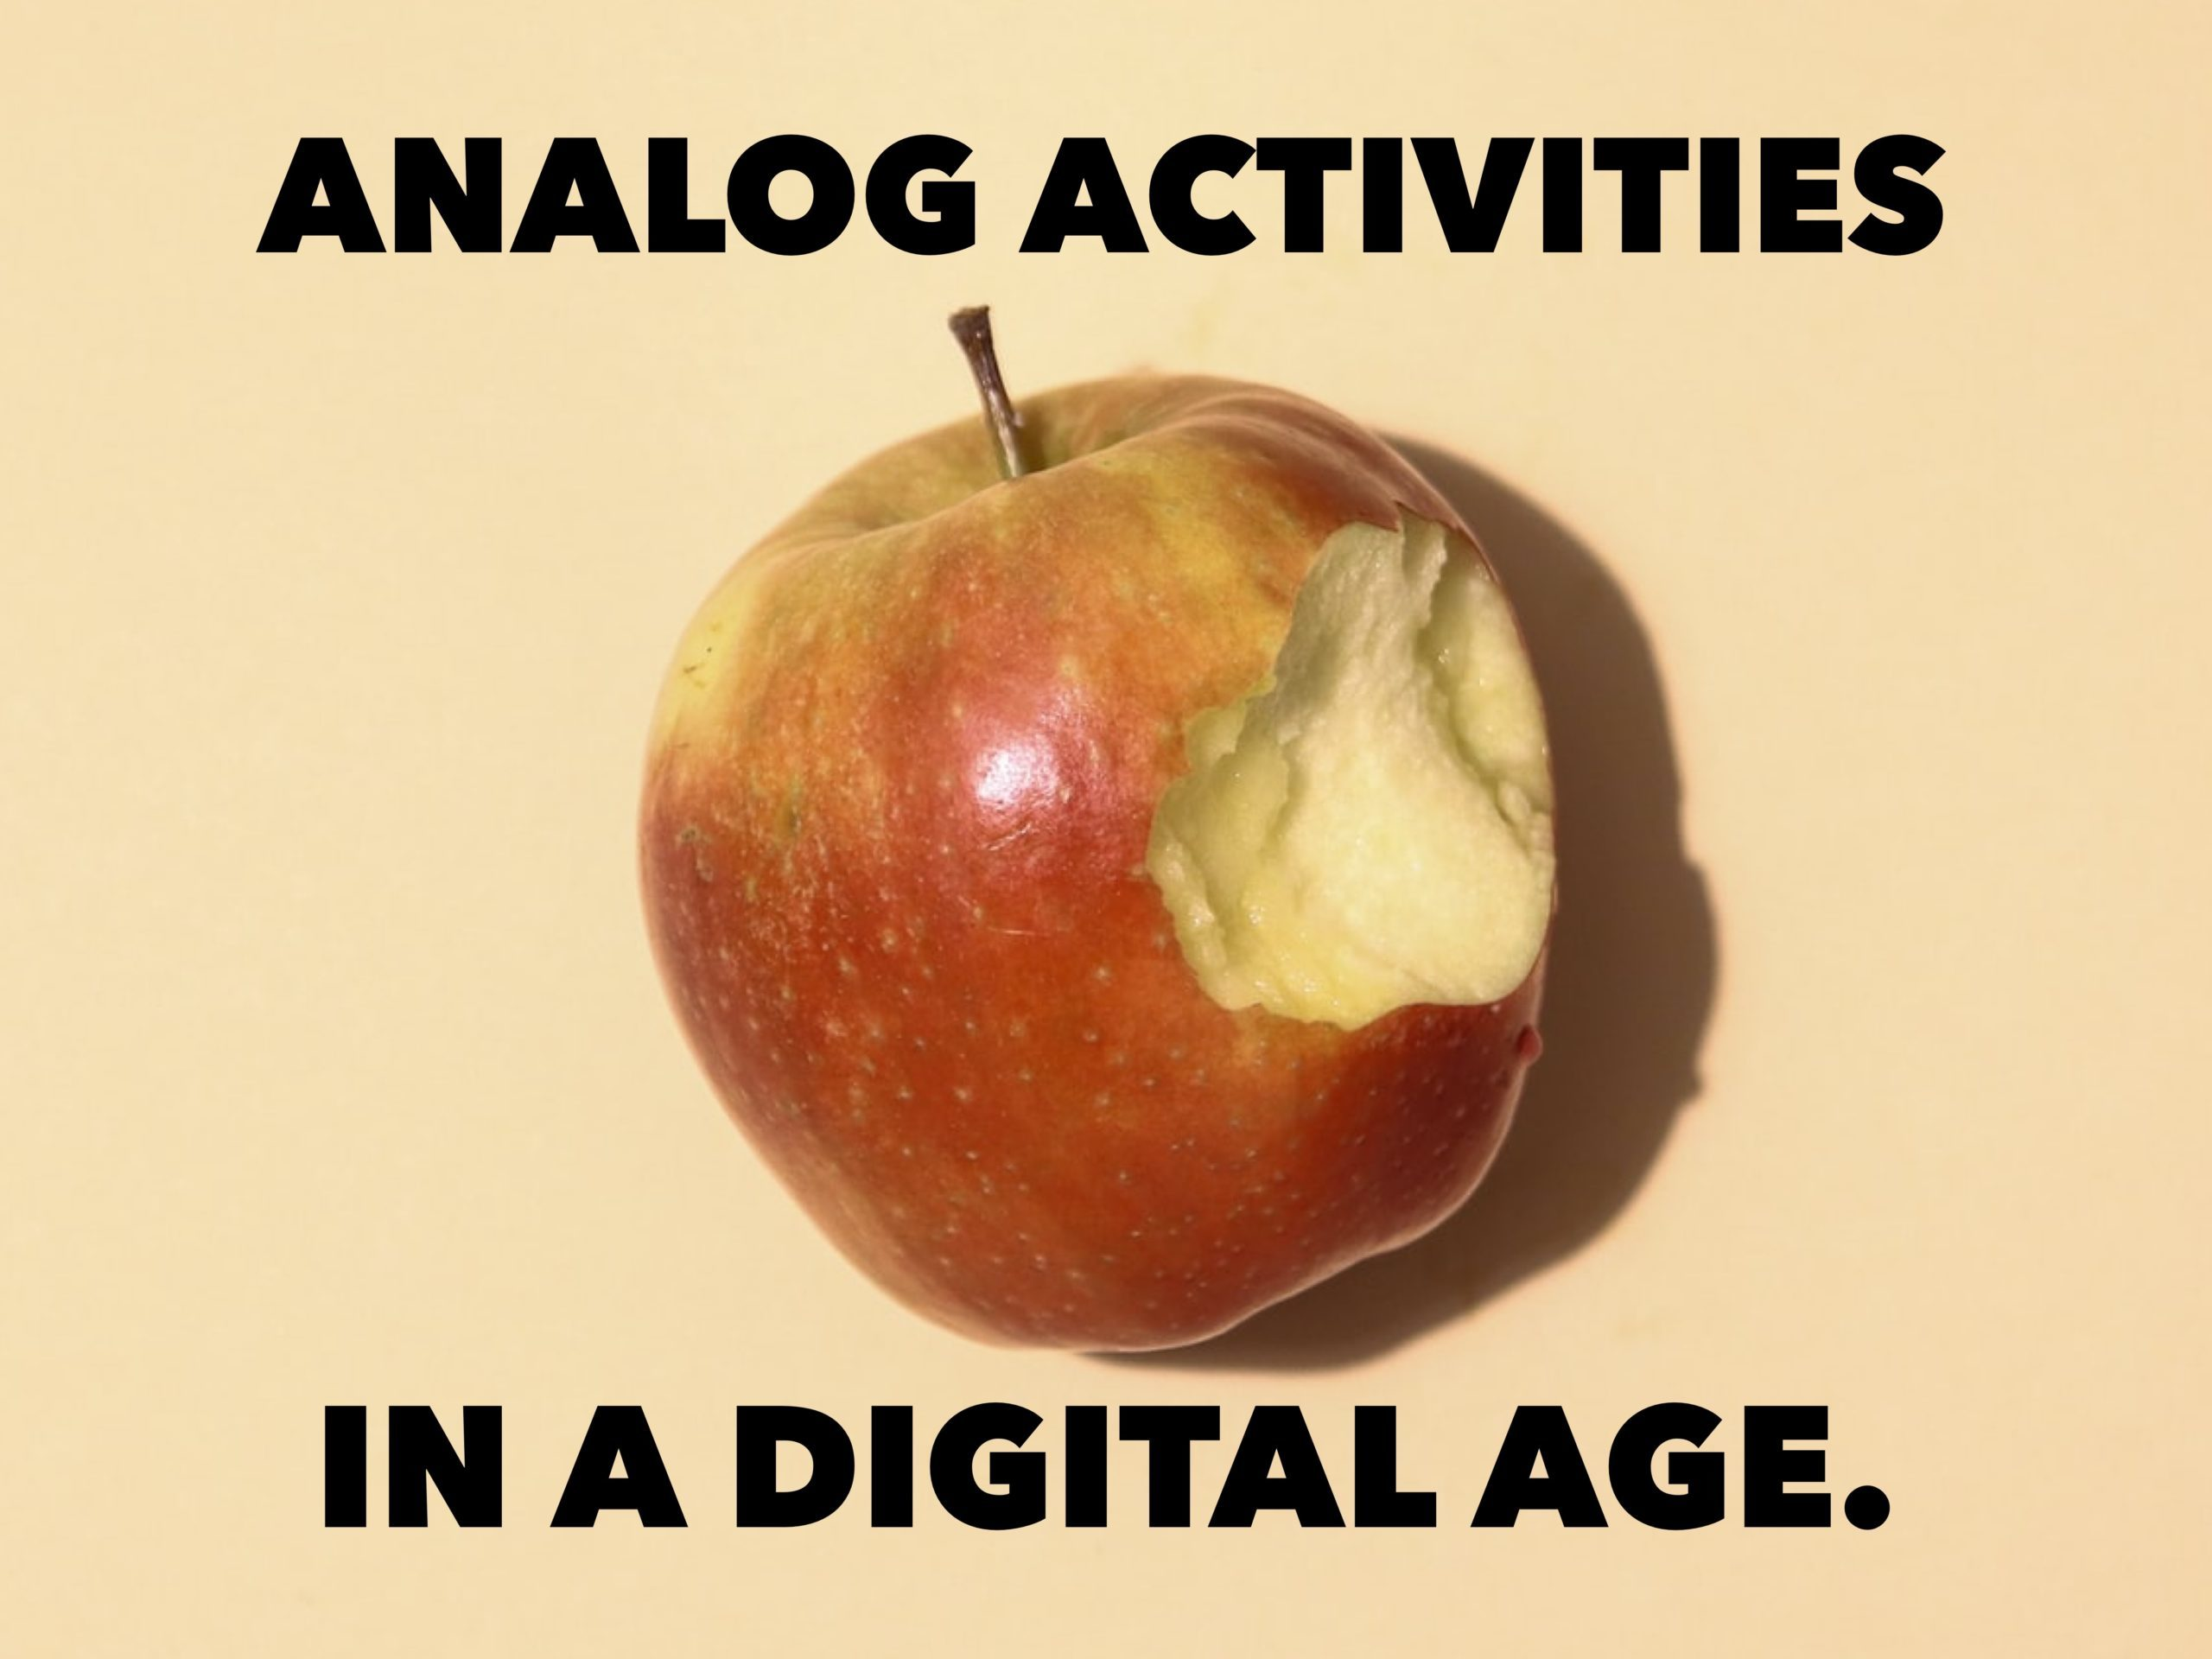 Analog Activities In A Digital Age.